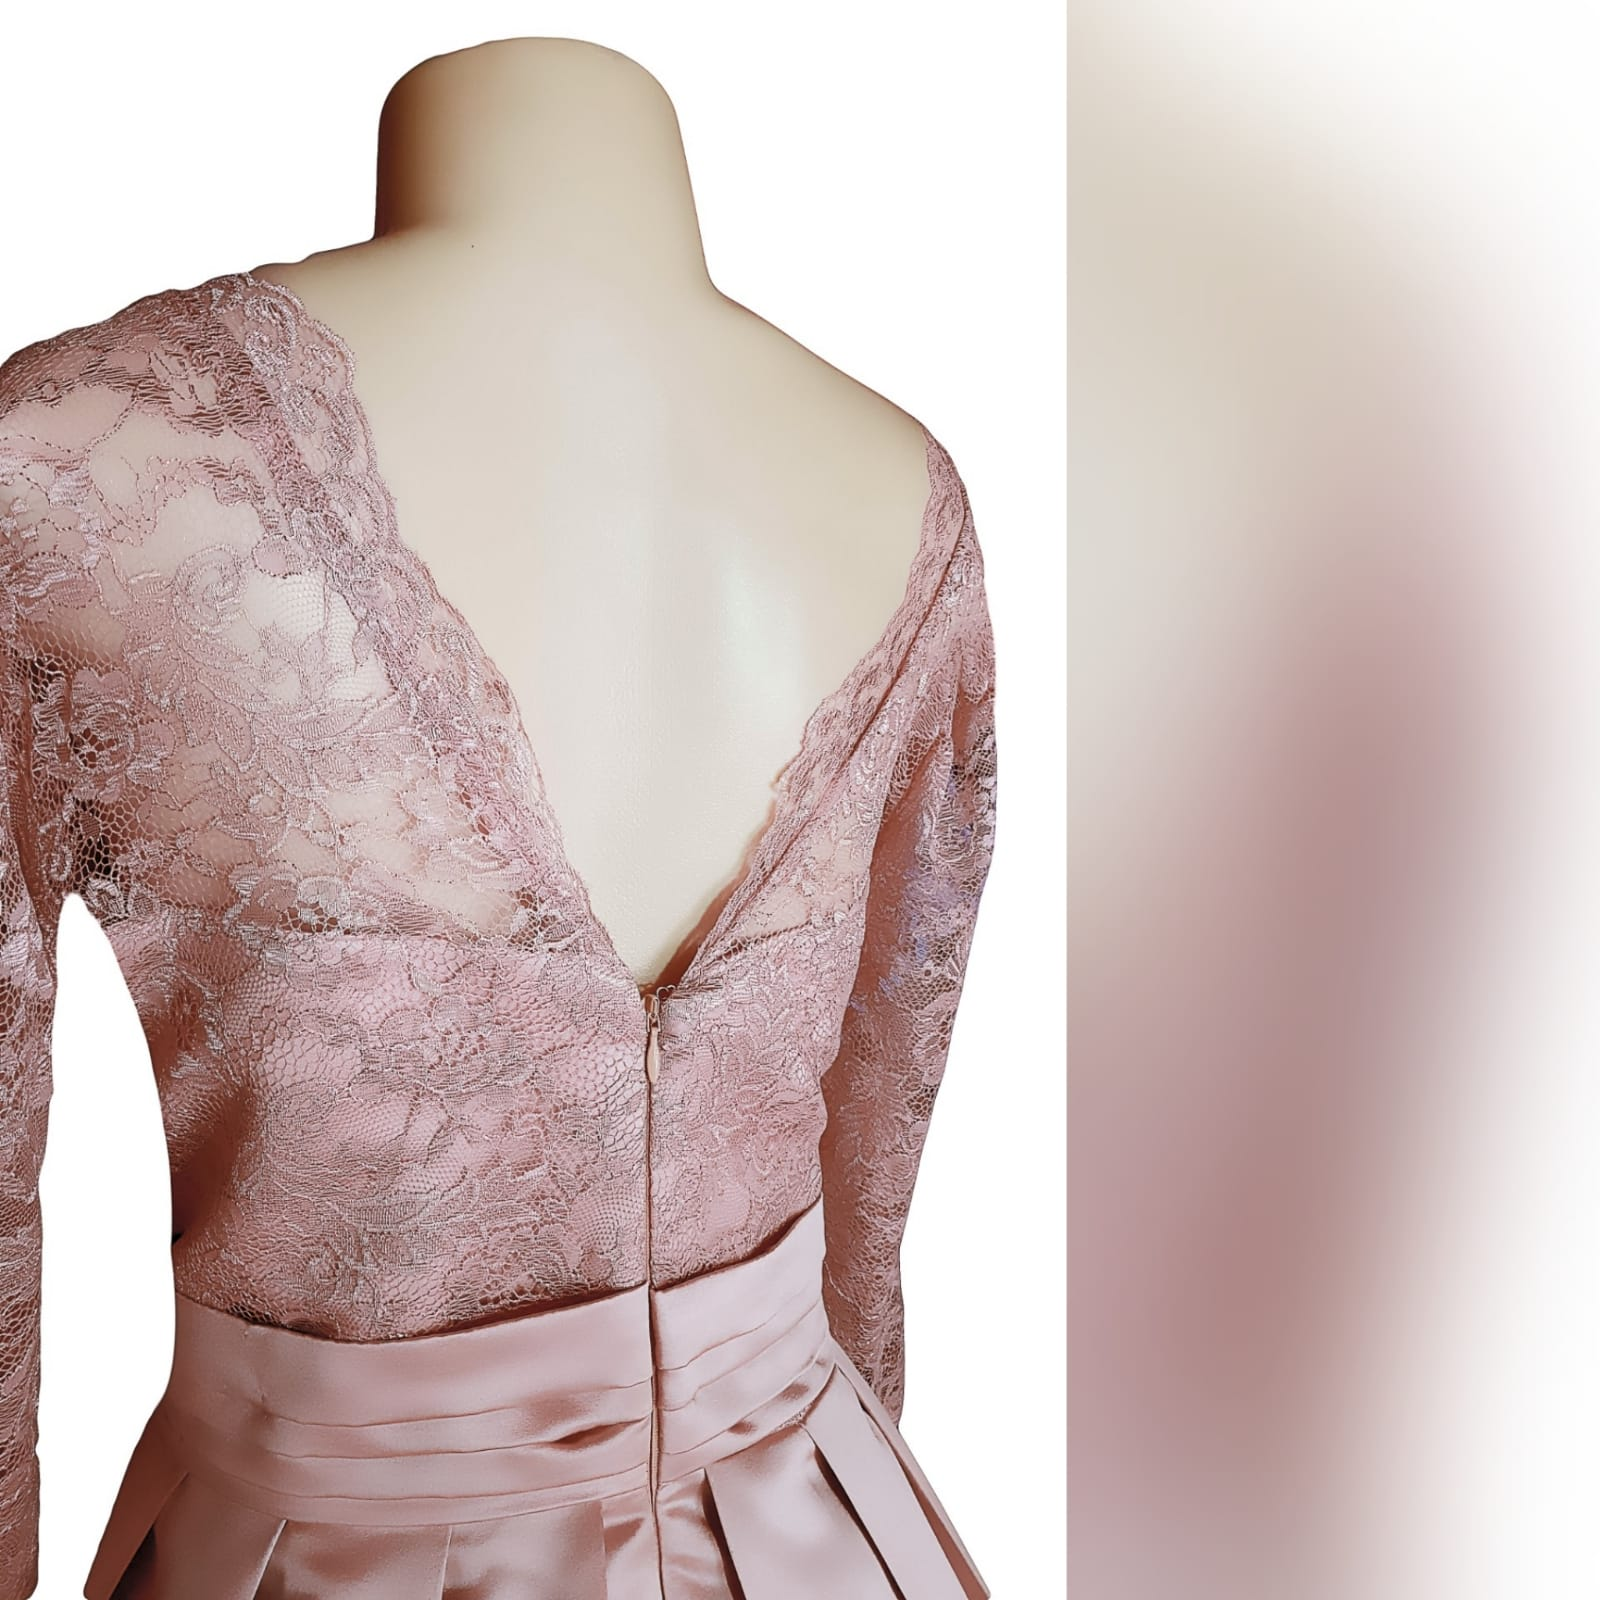 Formal evening dress in dusty pink 4 this dress was created for a wedding ceremony. A formal evening dress in dusty pink. With a lace bodice and 3/4 lace sleeves. With a v neckline. Bottom in a satin, pleated, with a pleated belt and pockets.